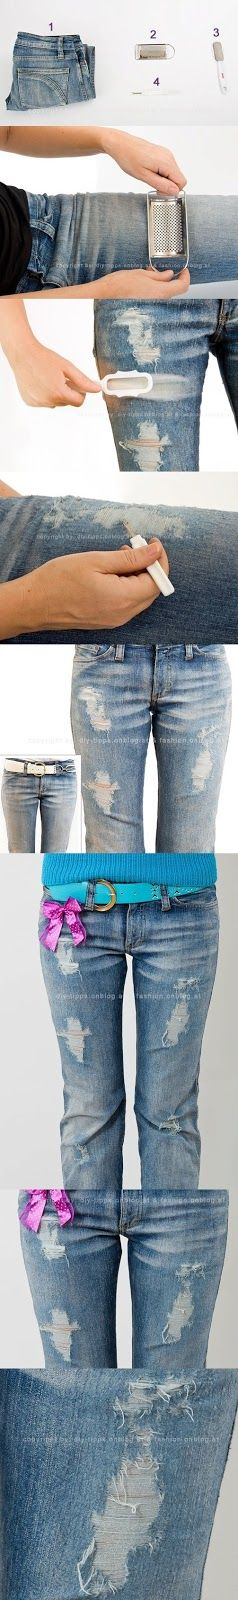 Just in case you ever want to distress your jeans.